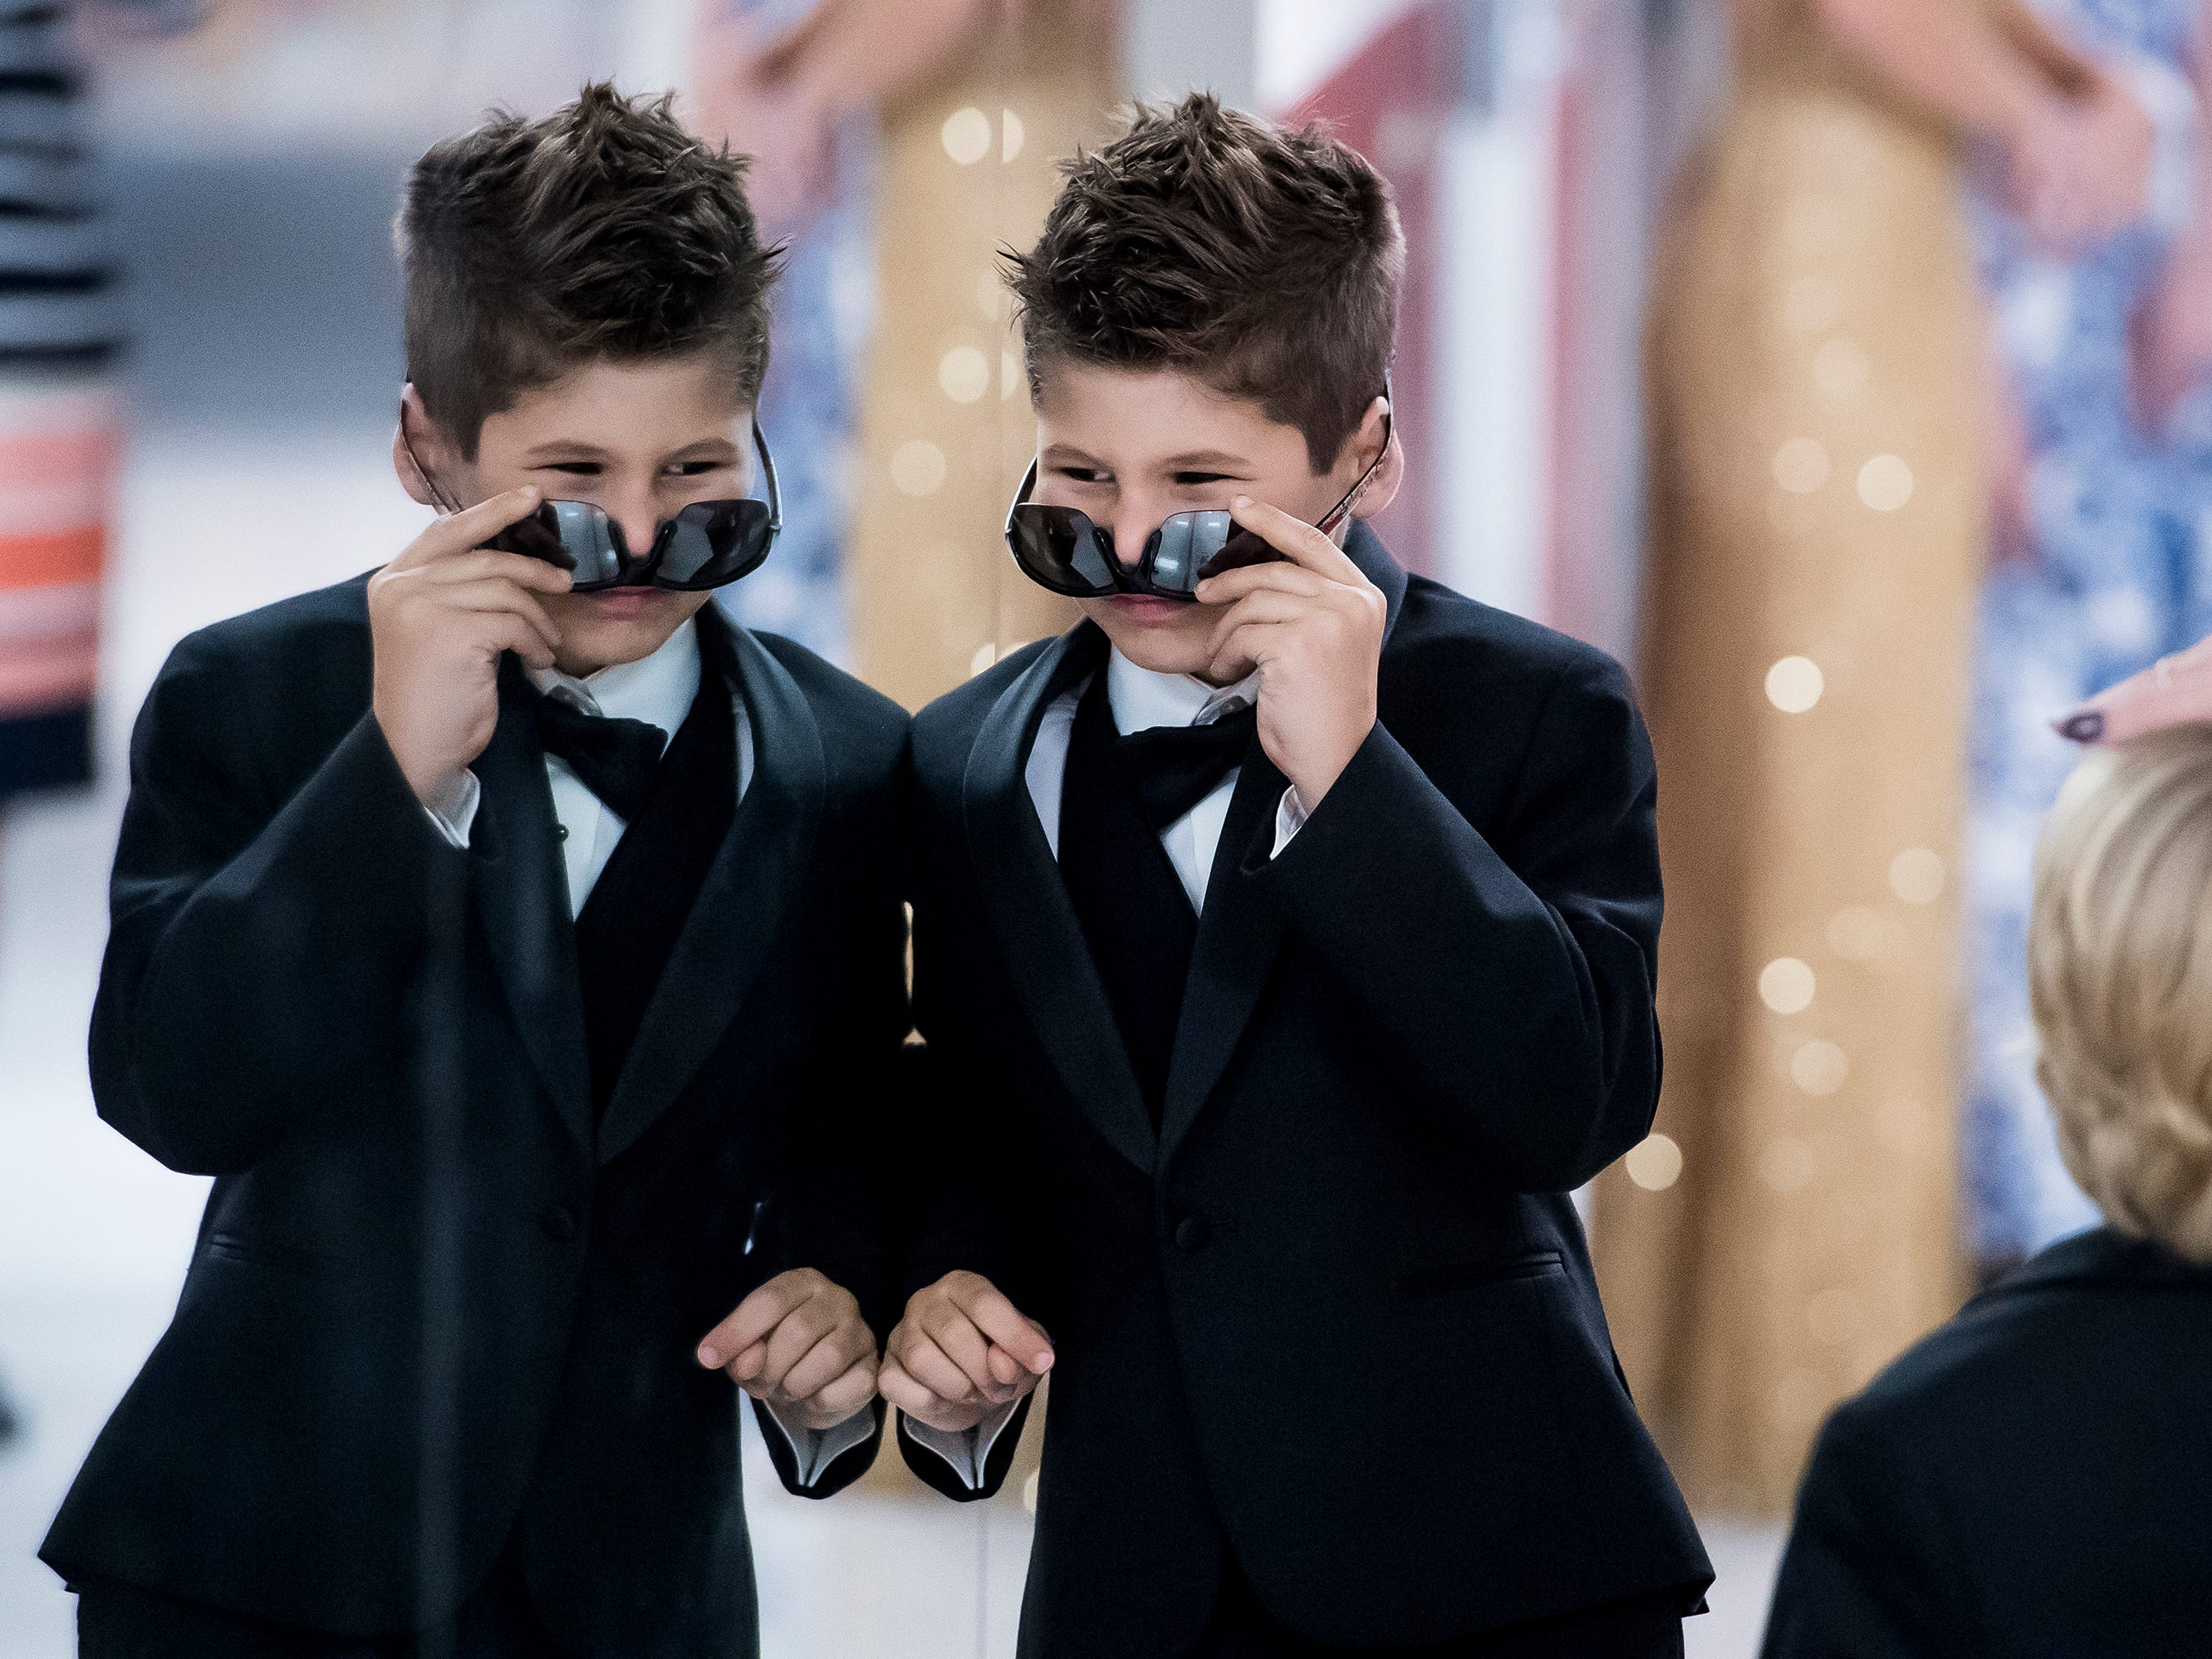 Liam Colvin, 6, checks out his sunglasses in a mirror during the intermission at the 50th Miss Hanover Area pageant on Monday, October 22, 2018.